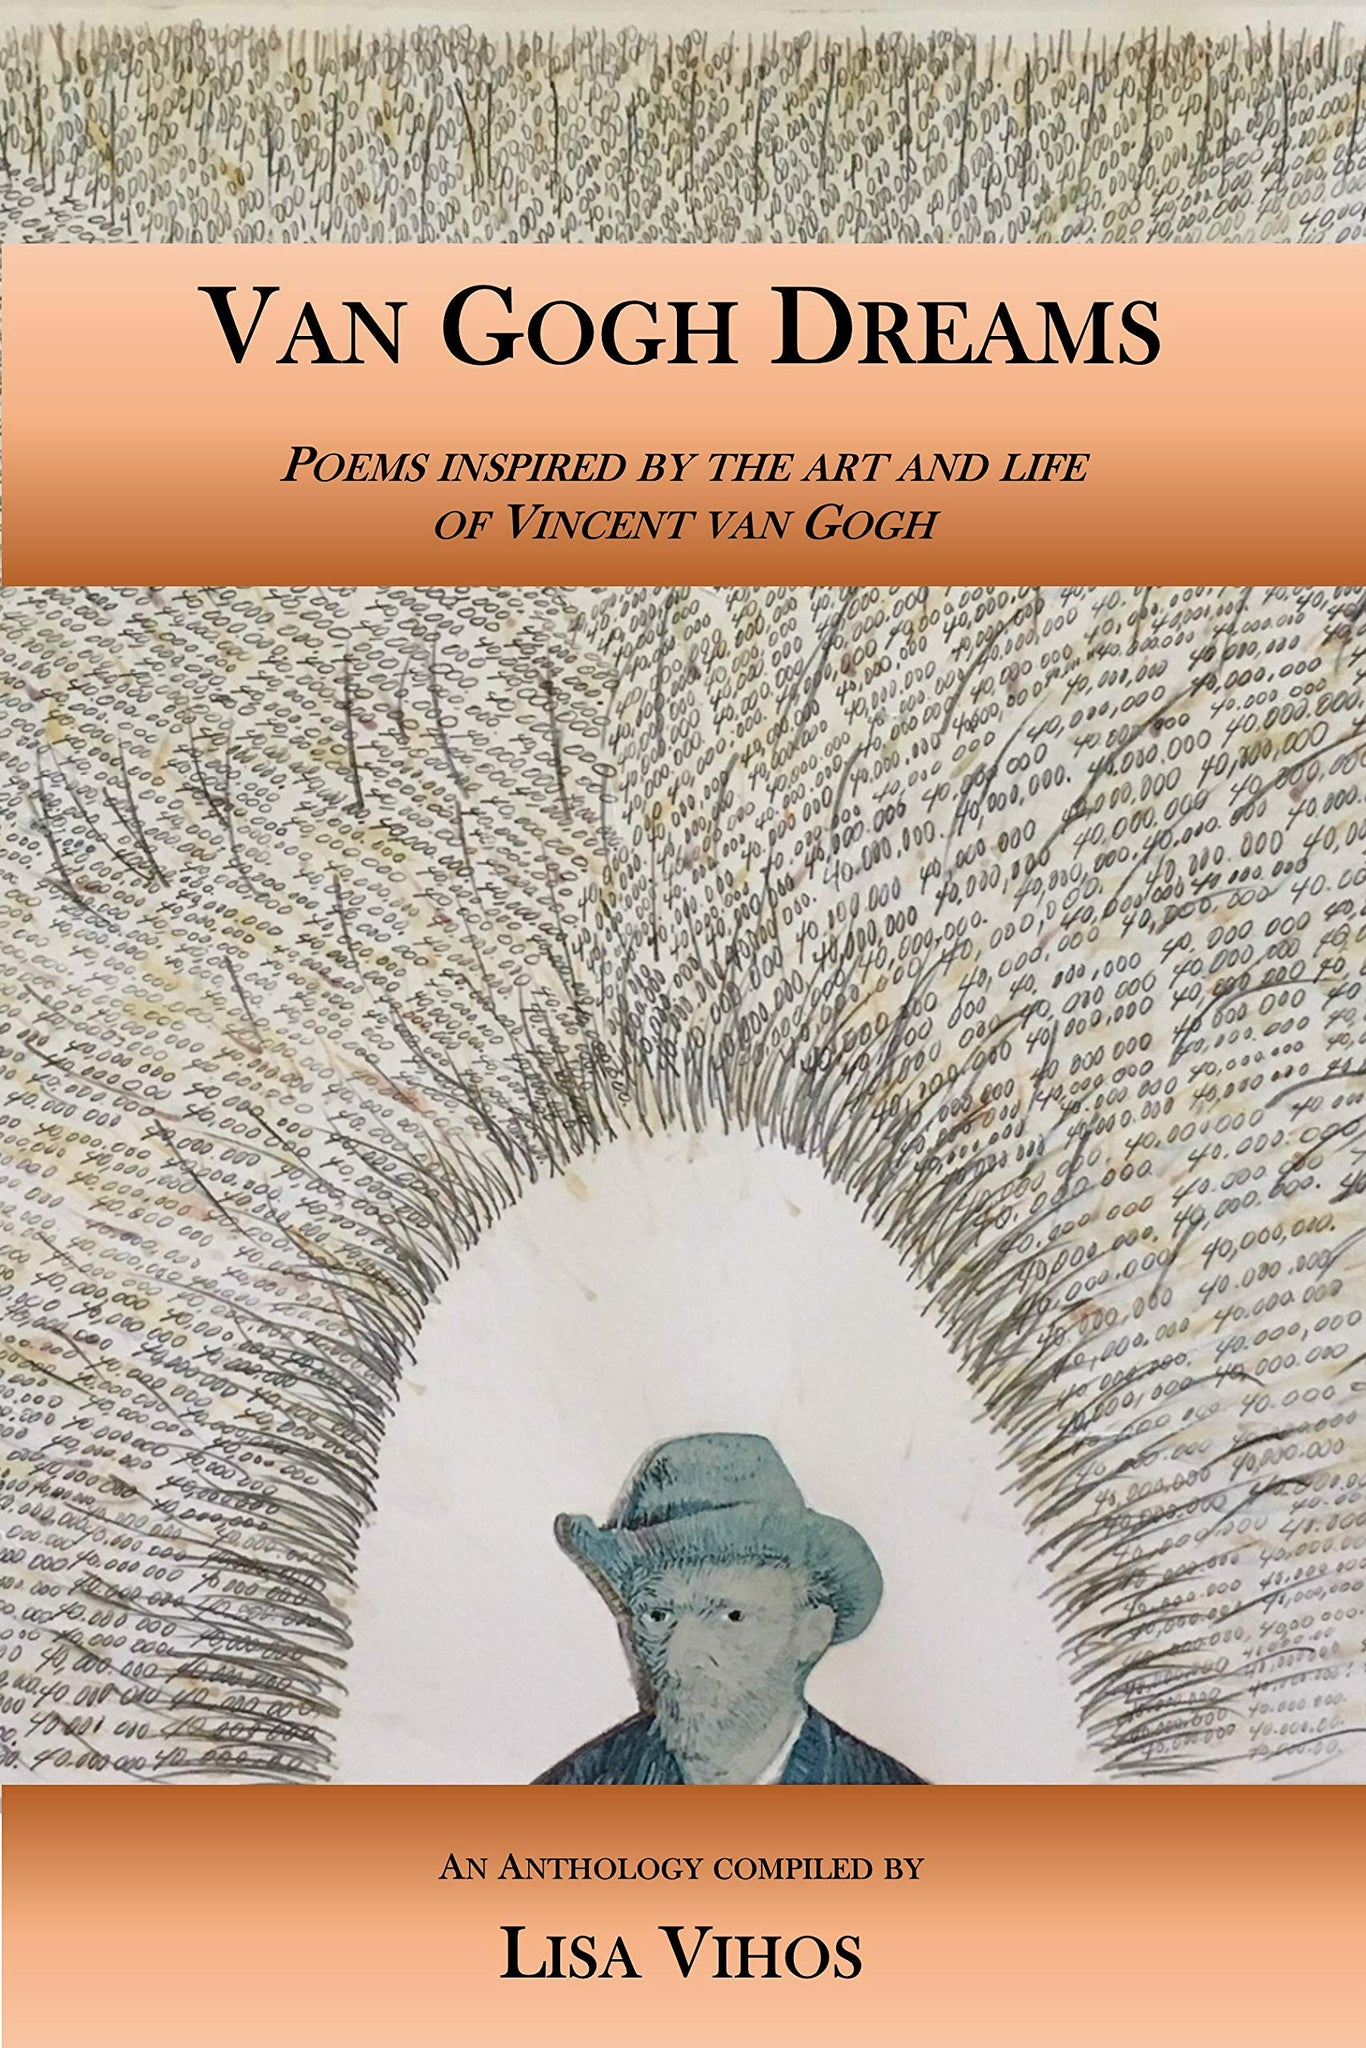 Van Gogh Dreams: Poems inspired by the art and life of Vincent van Gogh